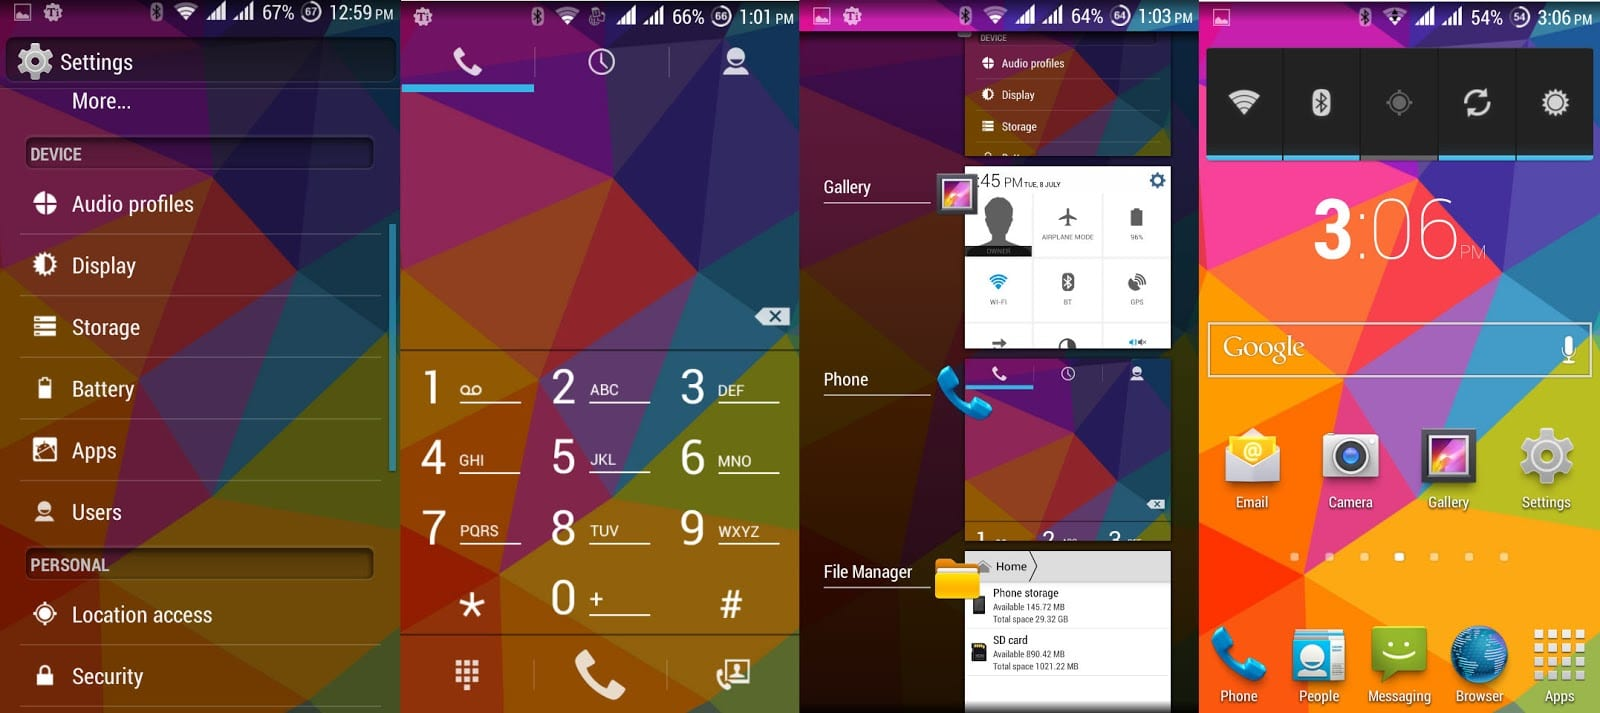 Android 4.4.2 KitKat Rom for Micromax A114 Canvas 2.2